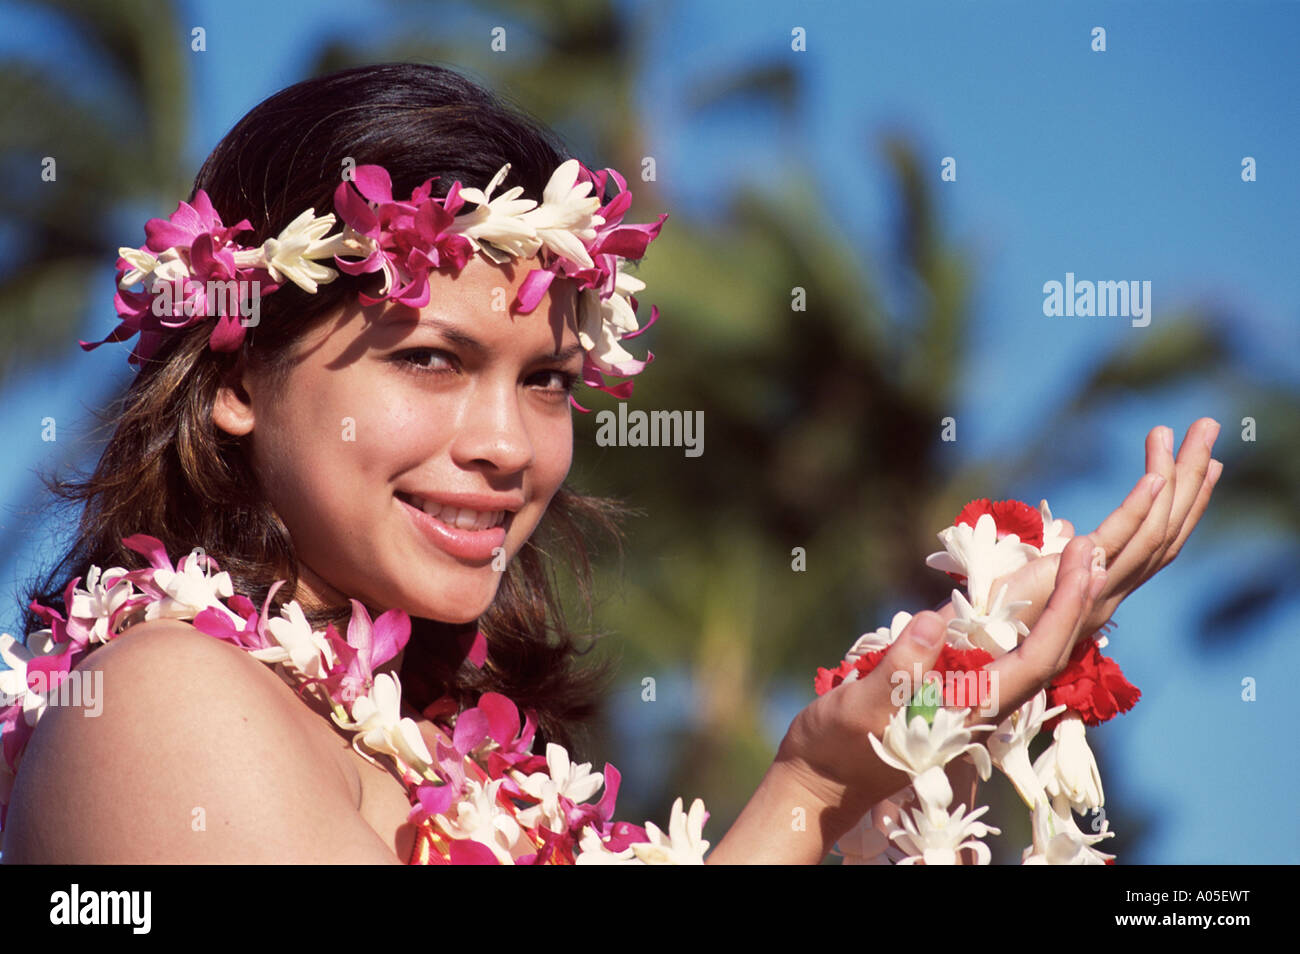 Hawaiian Girl With Flower Lei, Day - Stock Image